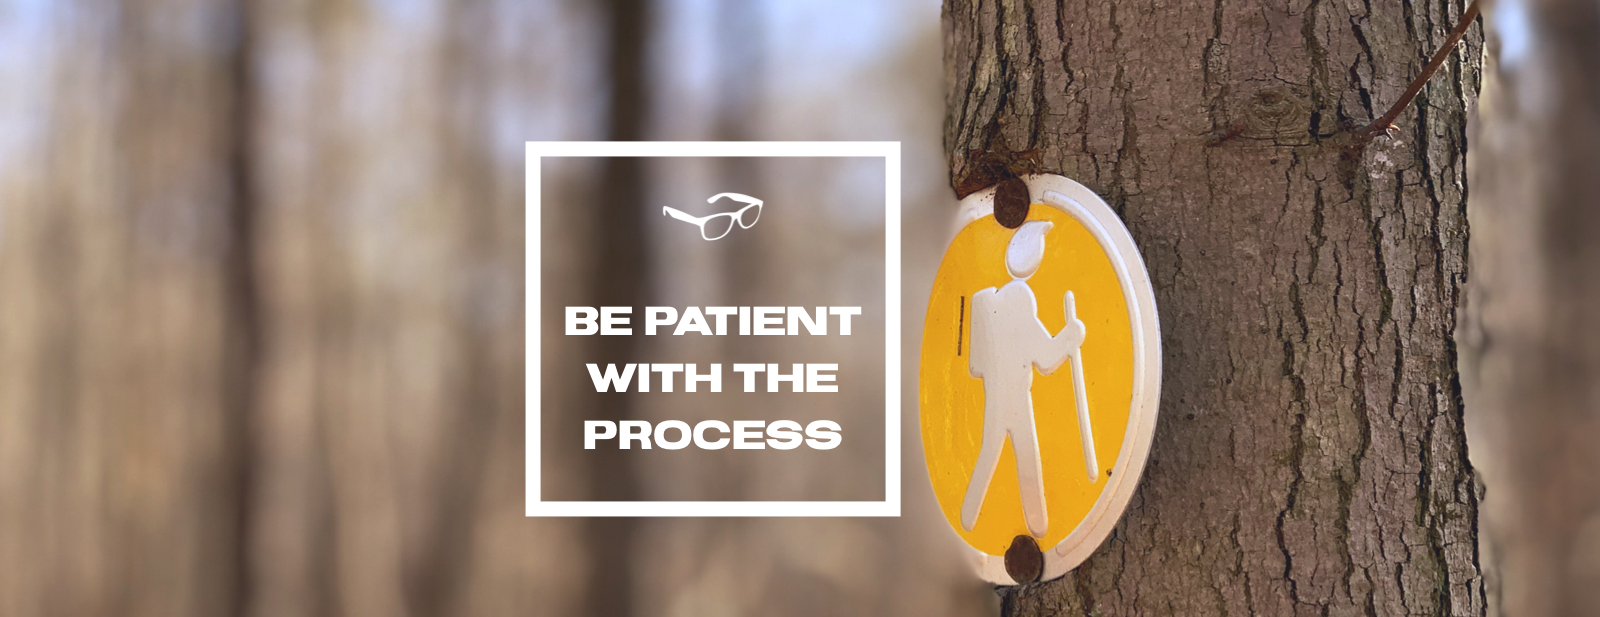 Be Patient With The Process